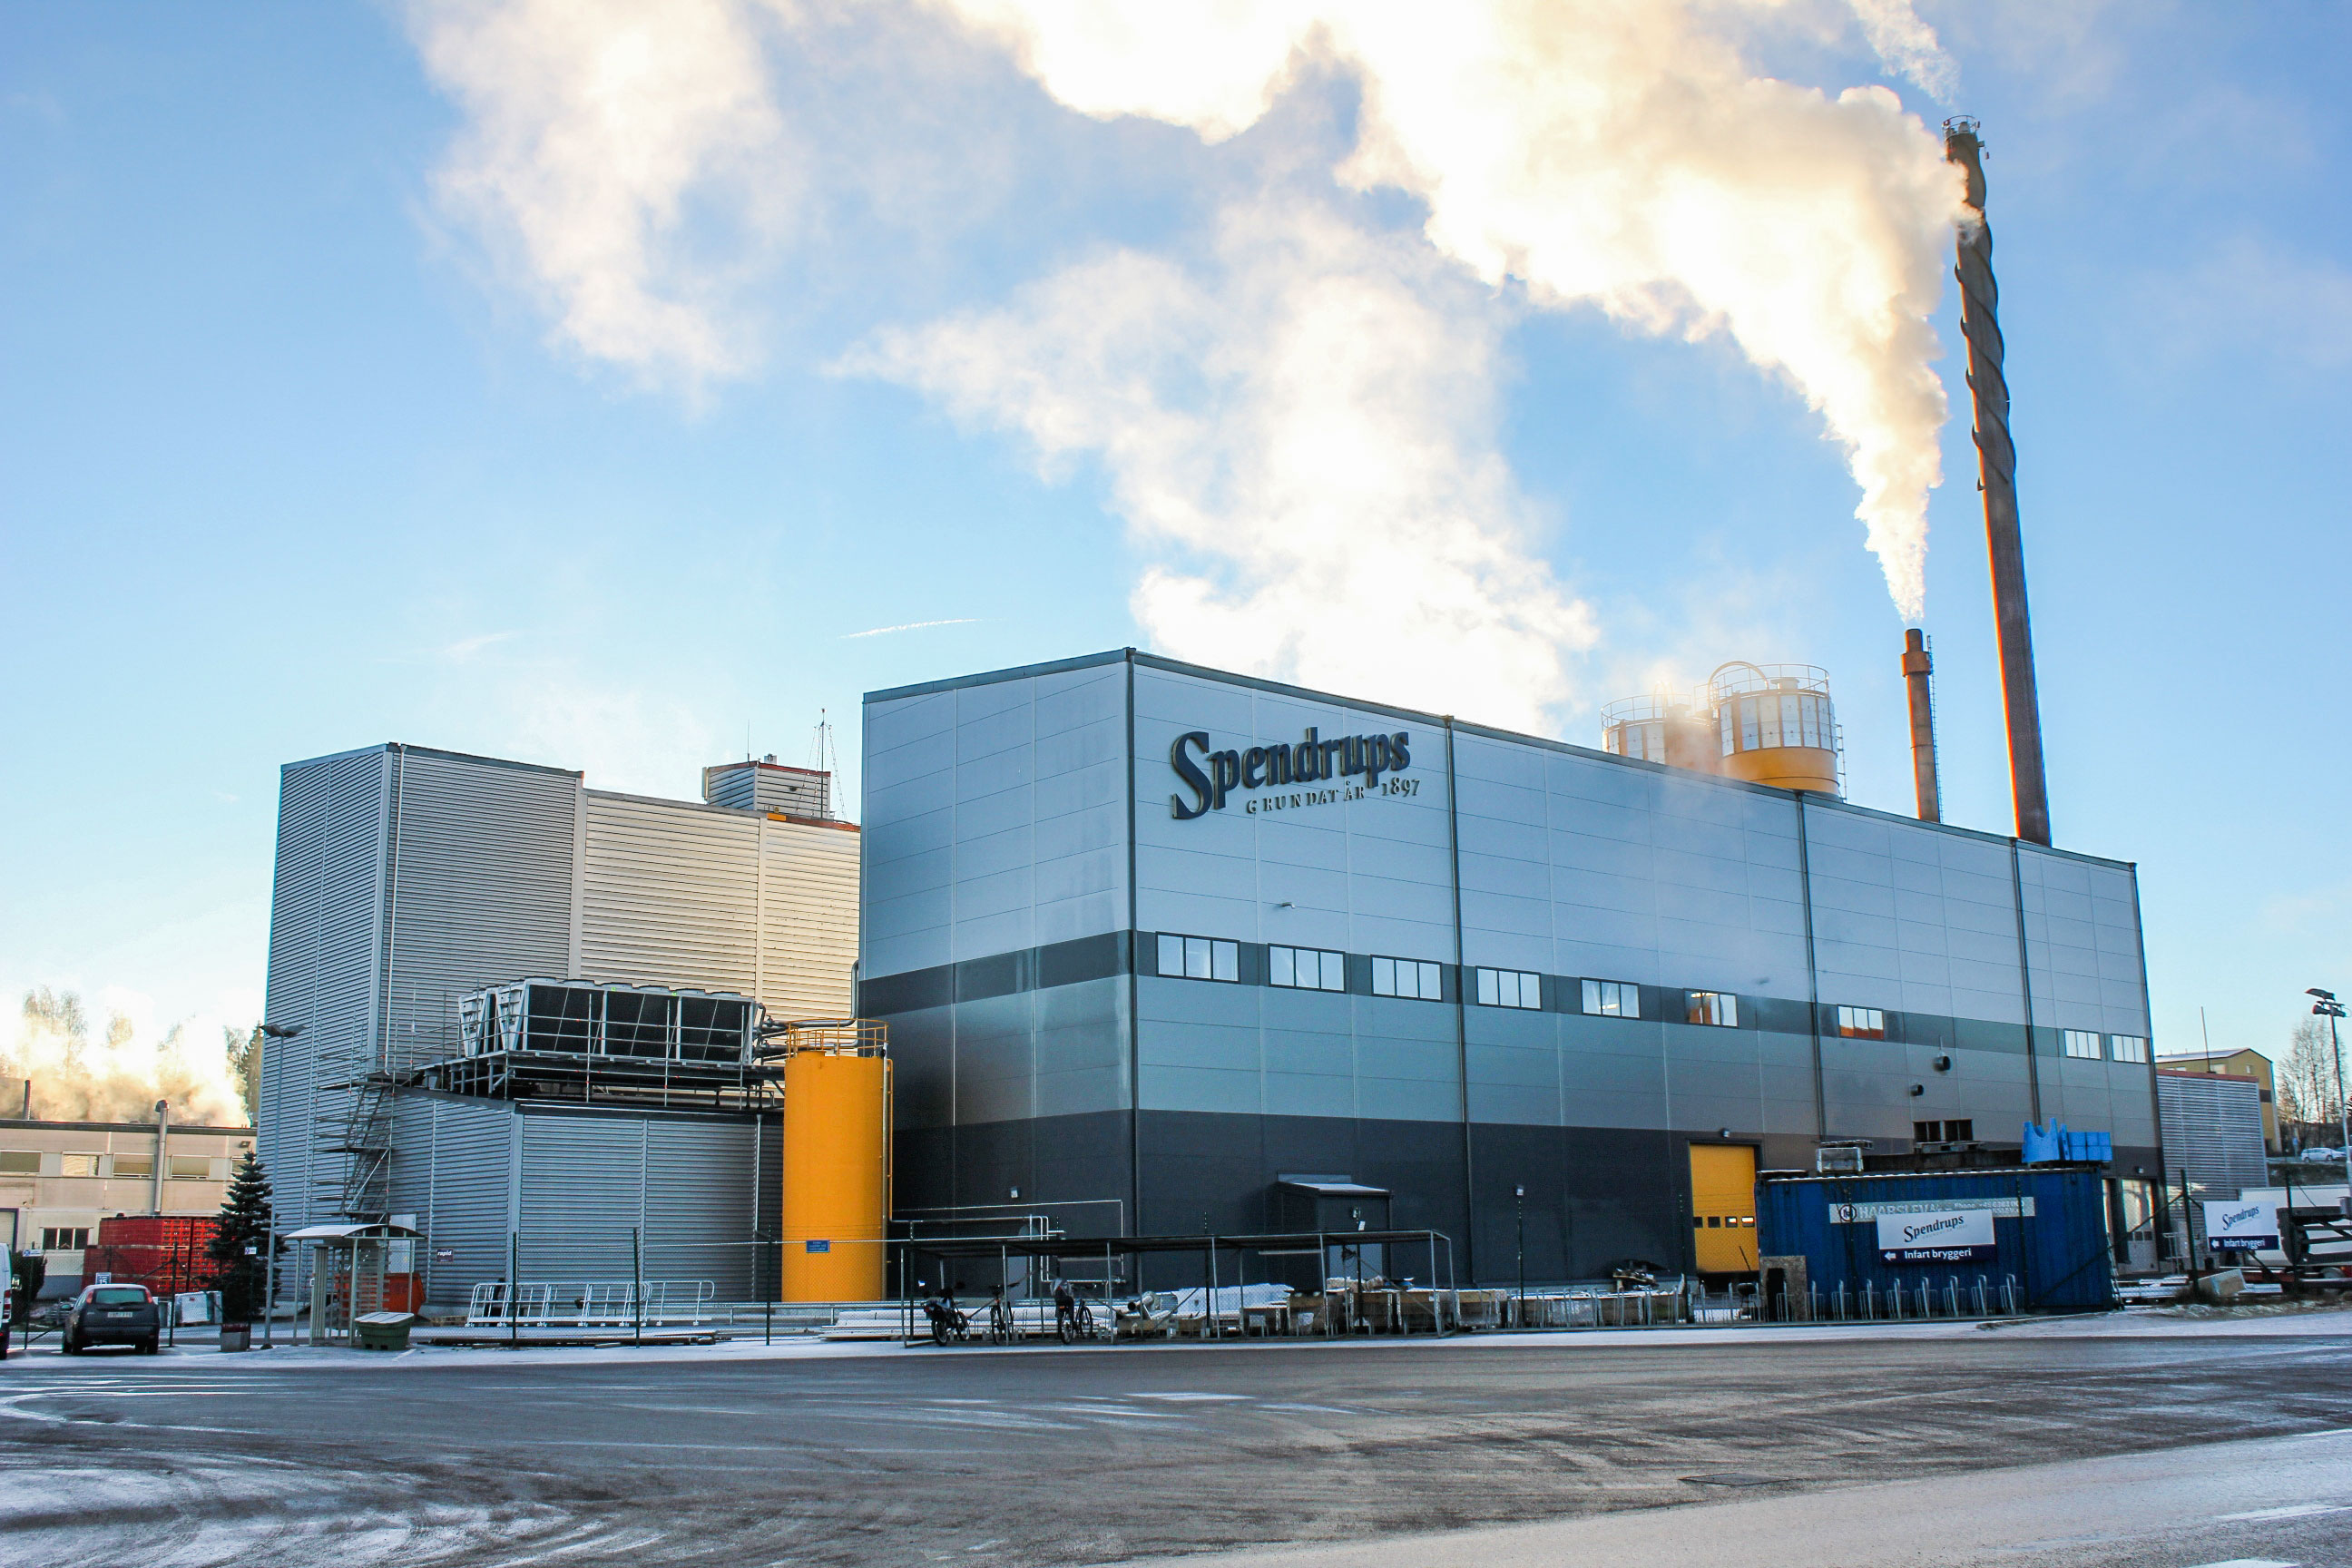 Spendrups Sweden Factory